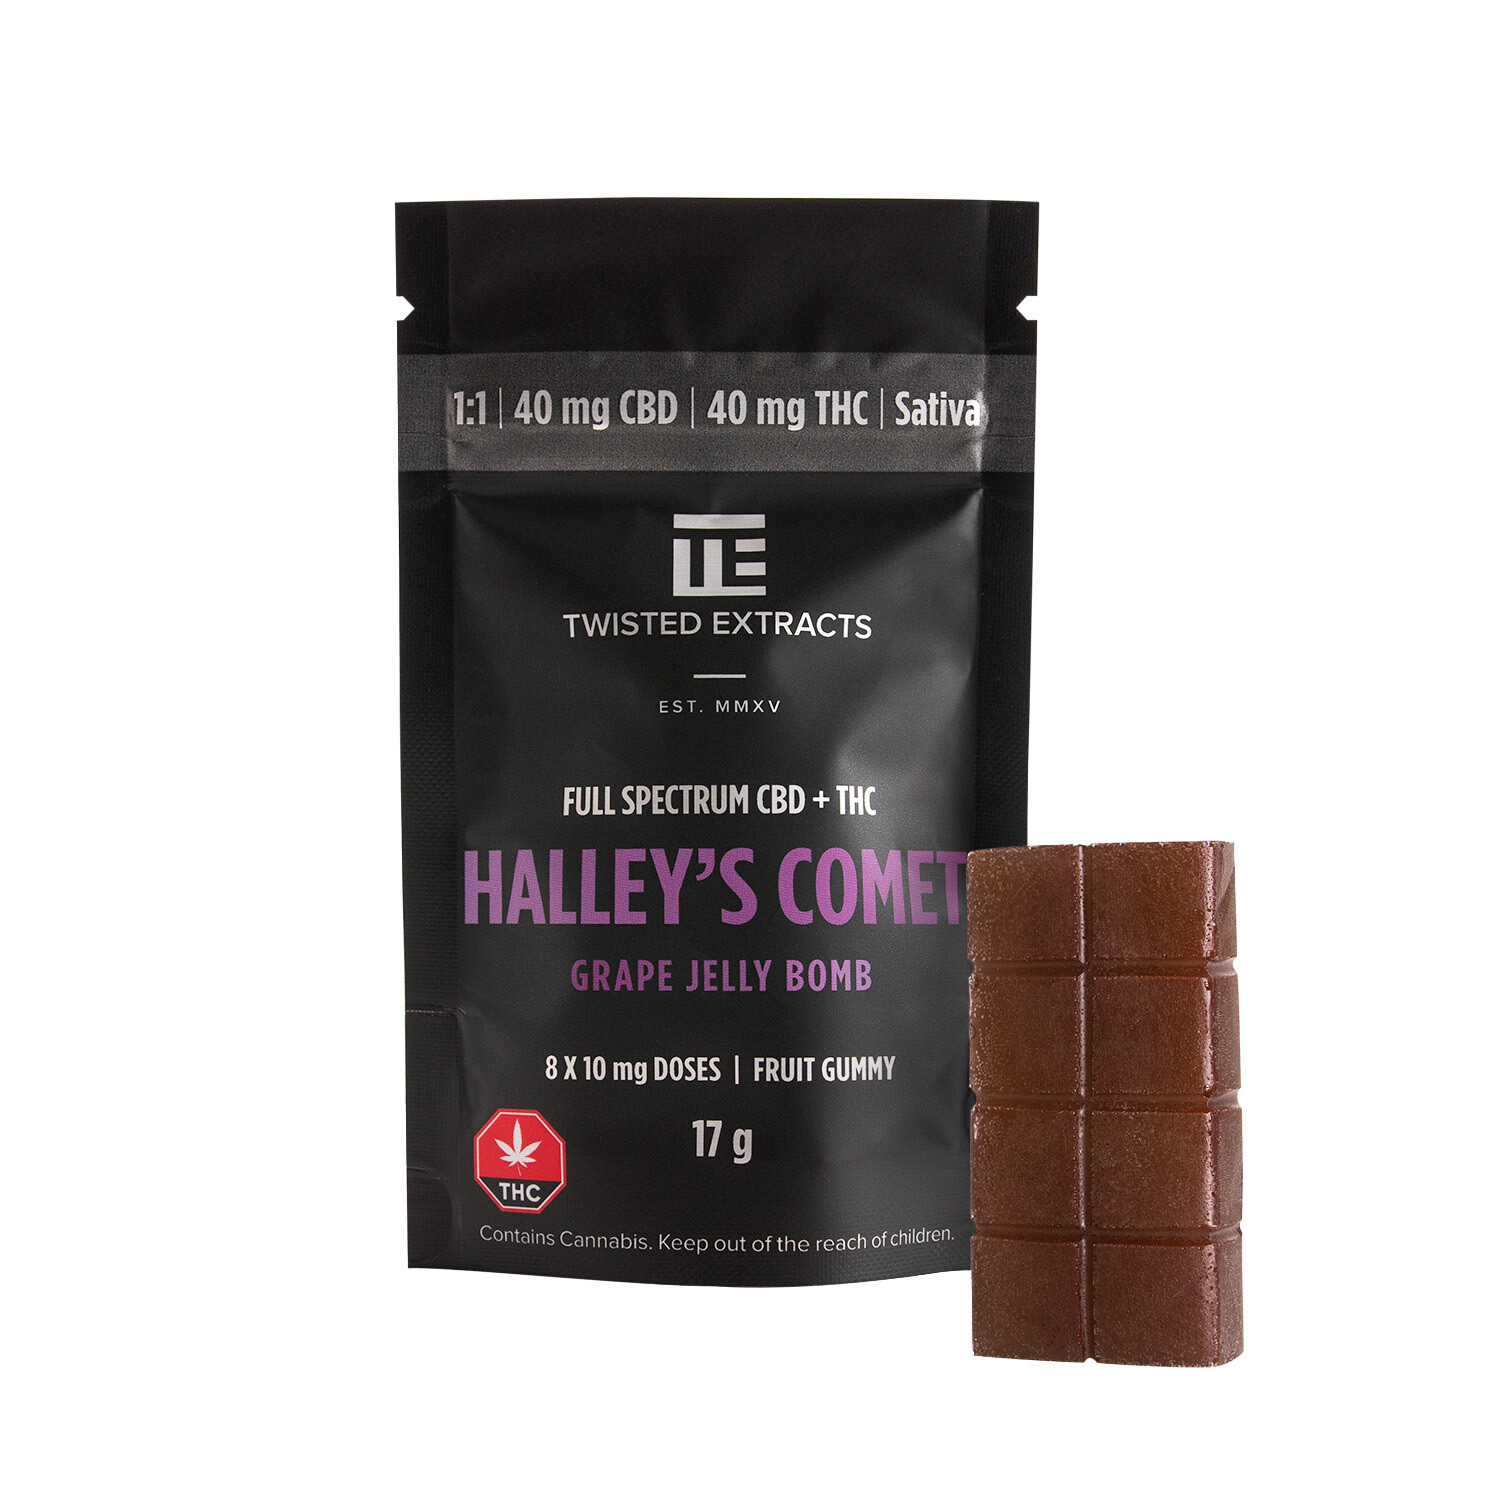 40mg 1:1 THC/CBD Grape Halley's Comet Jelly Bomb (Full Spectrum) By Twisted Extracts